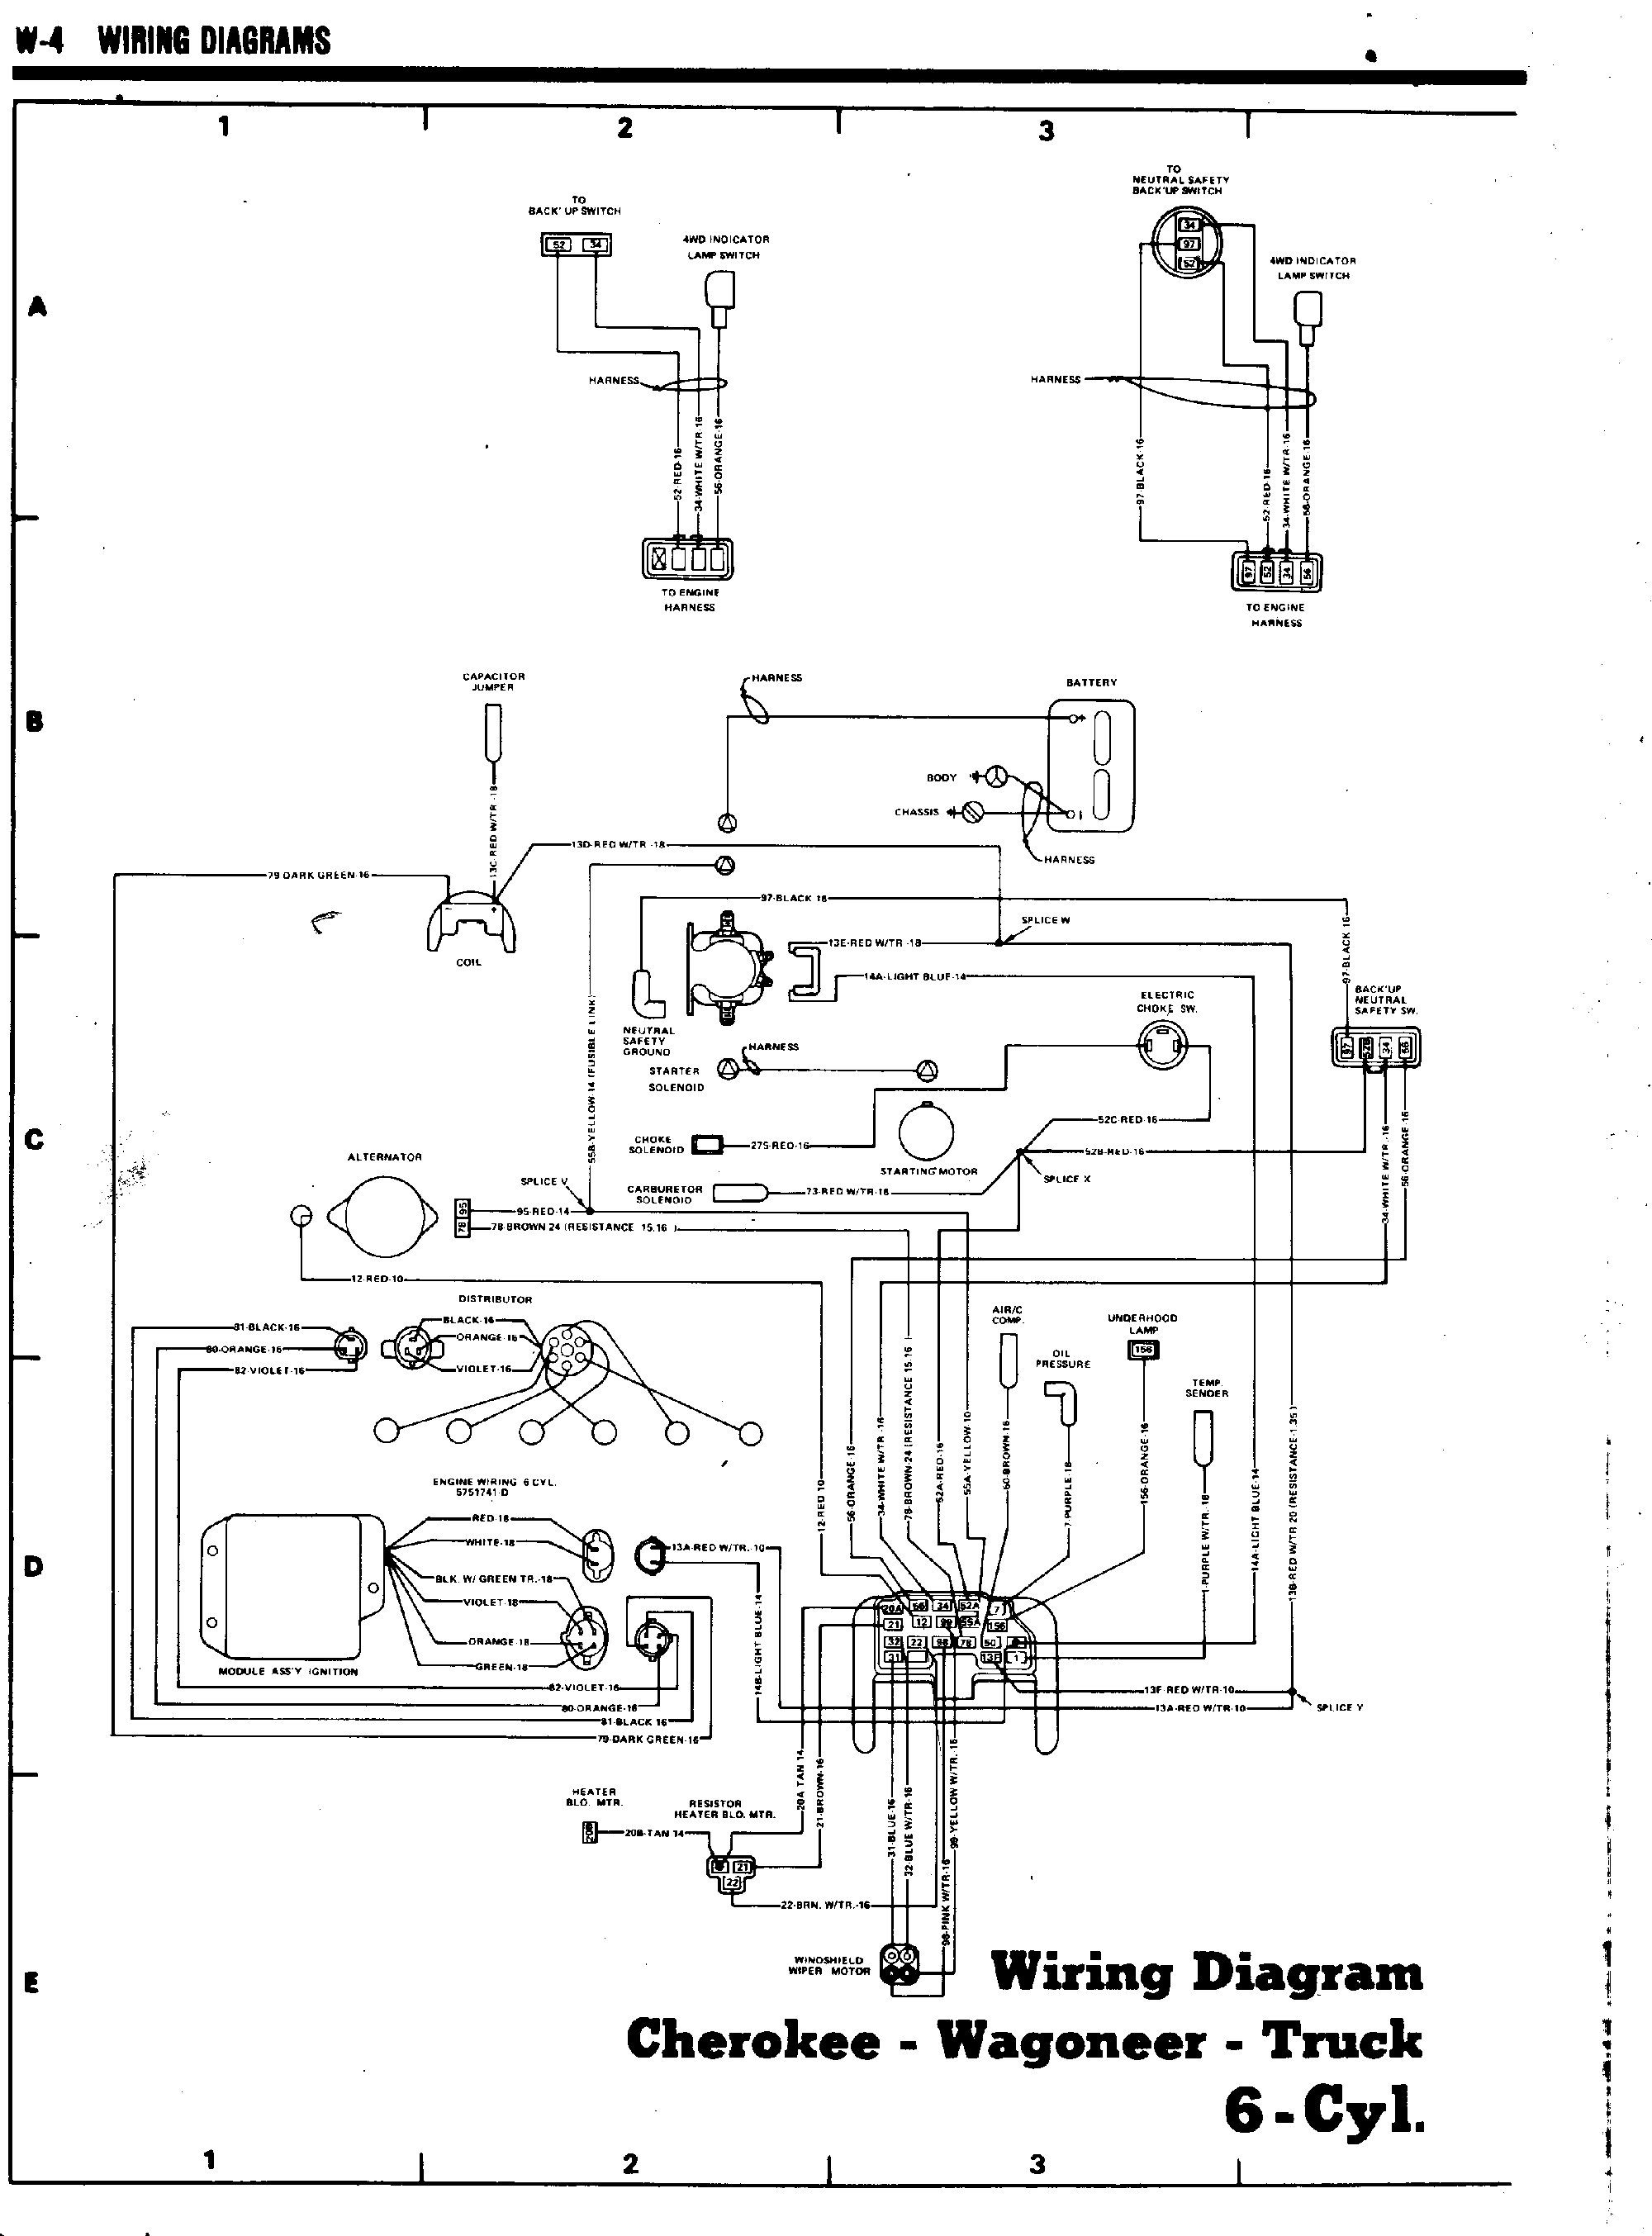 89 Chevy Truck Ignition Wiring Diagram Chevy Wiring